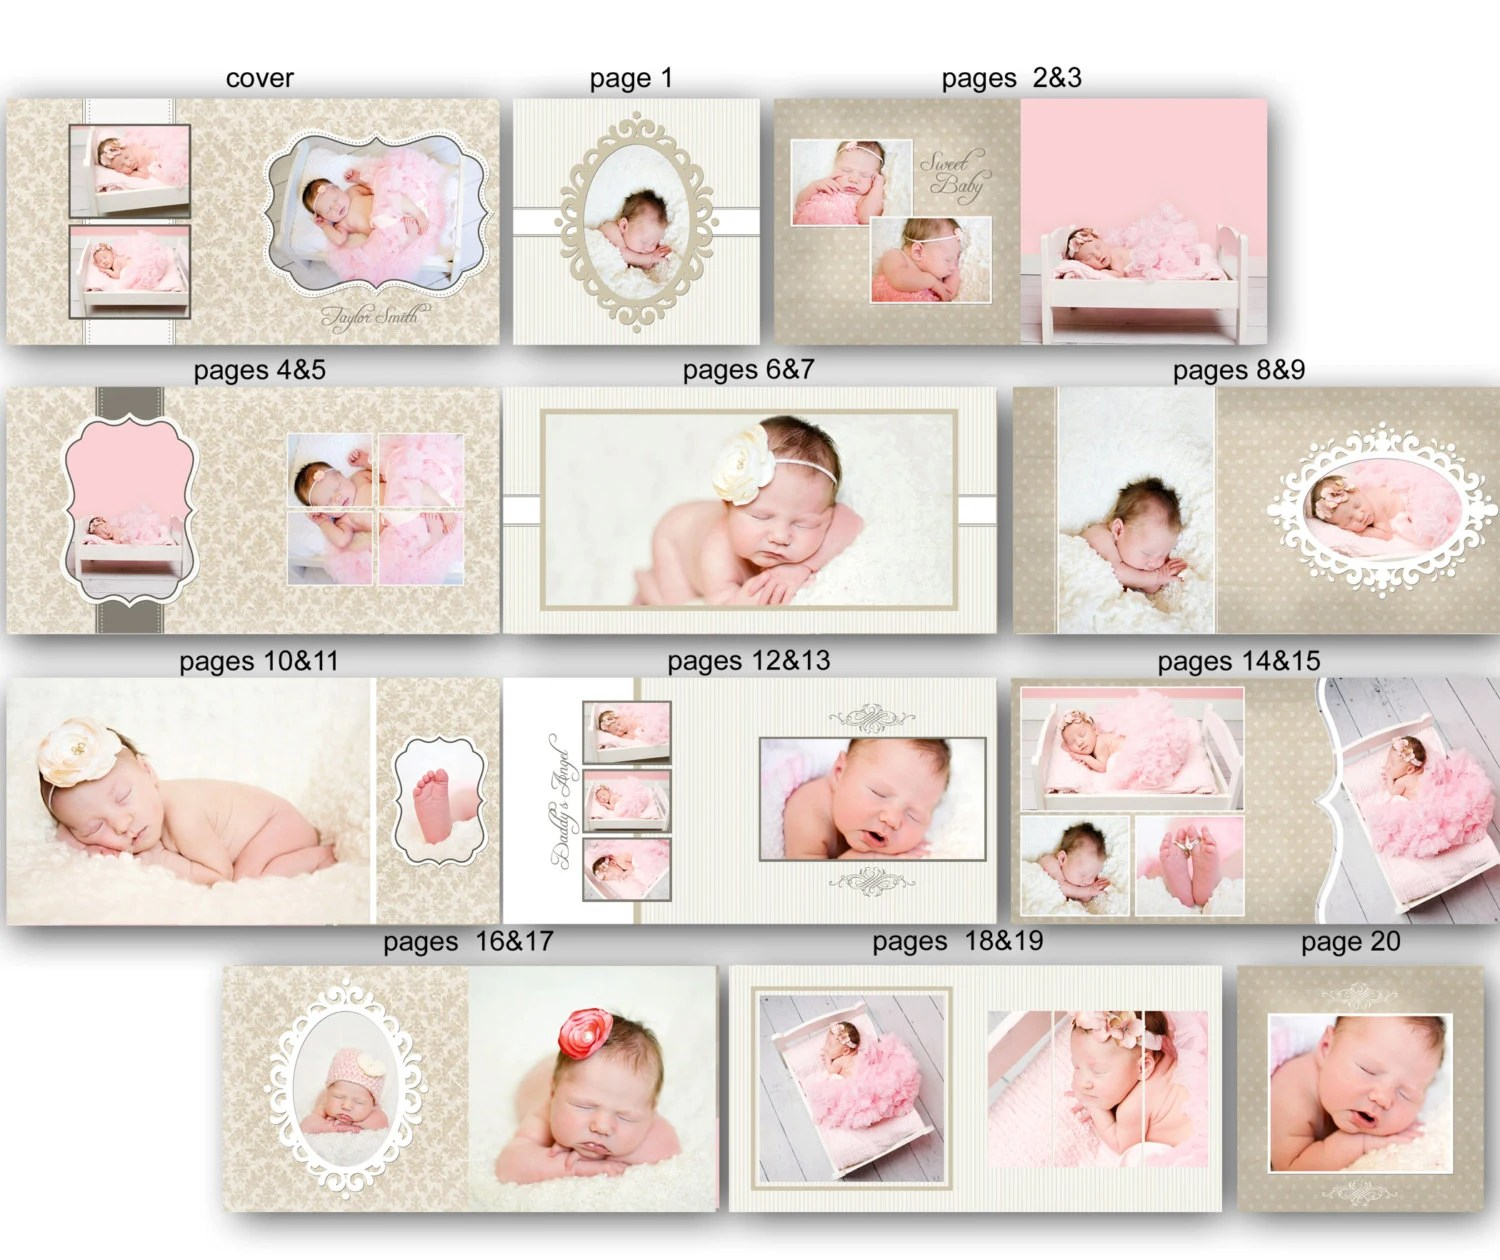 baby album templates - Ozilalmanoof - photo album templates free